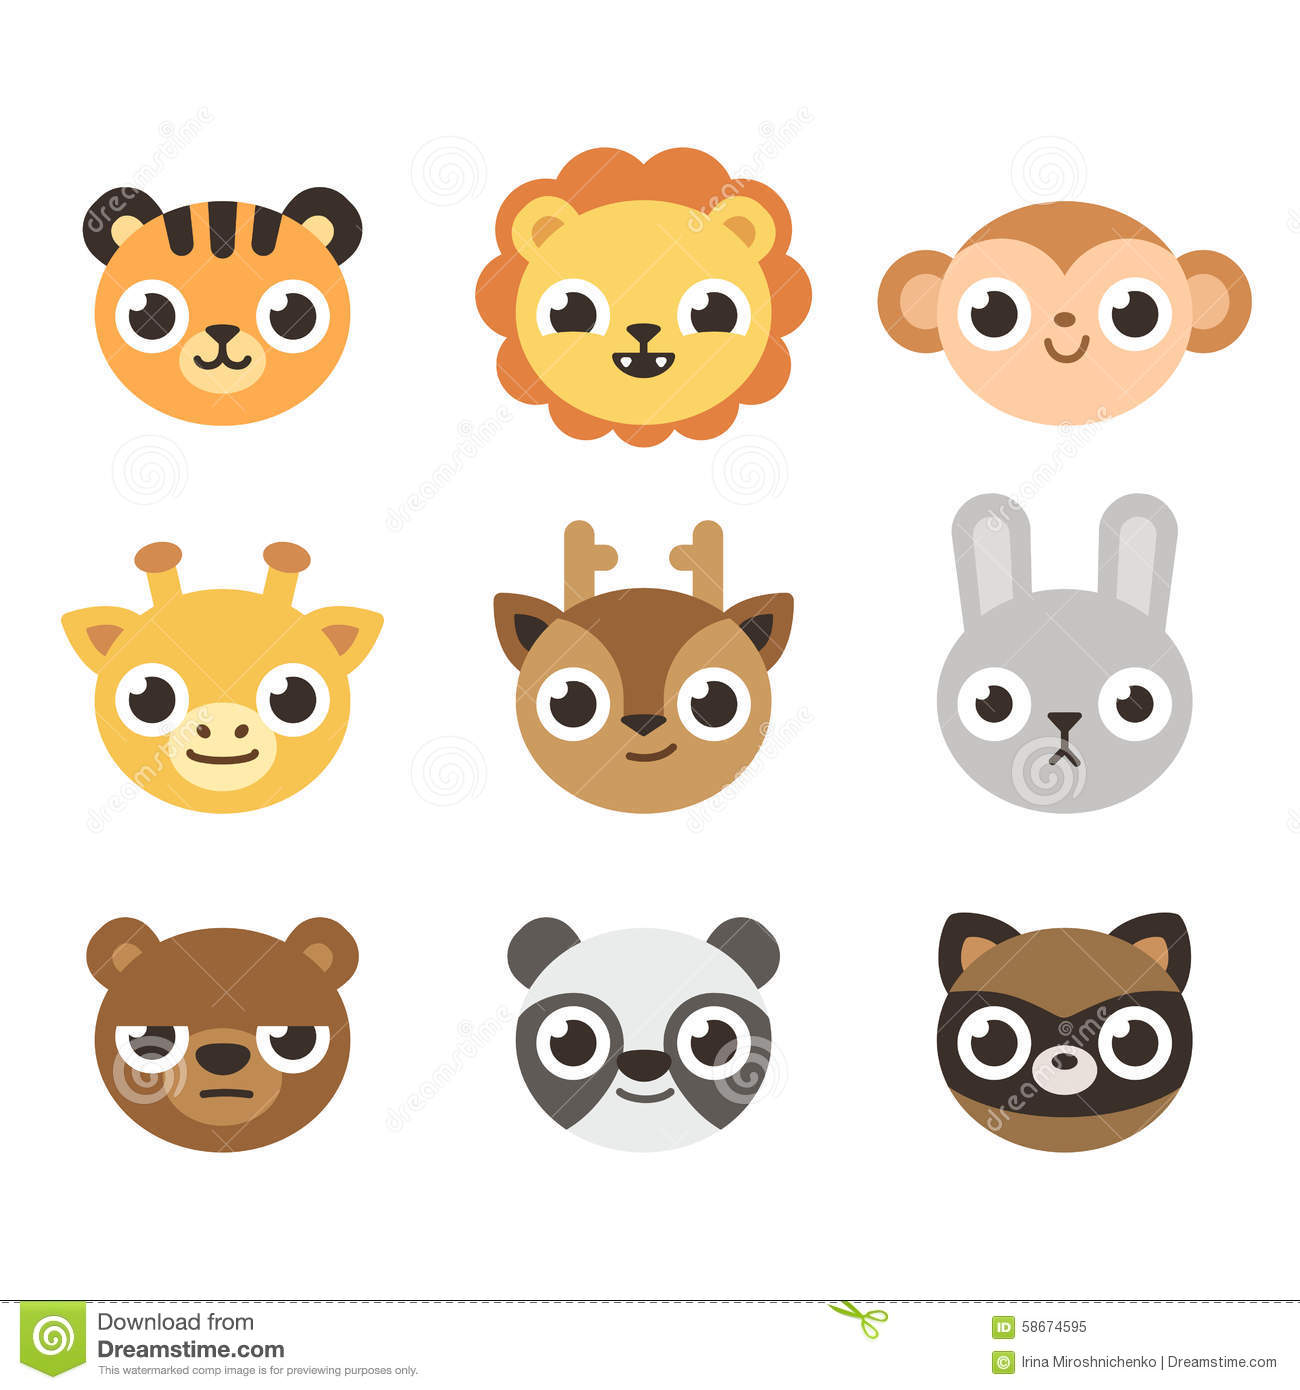 cute cartoon animal faces stock vector illustration of jungle animals clip art funny jungle animals clipart shipping labels